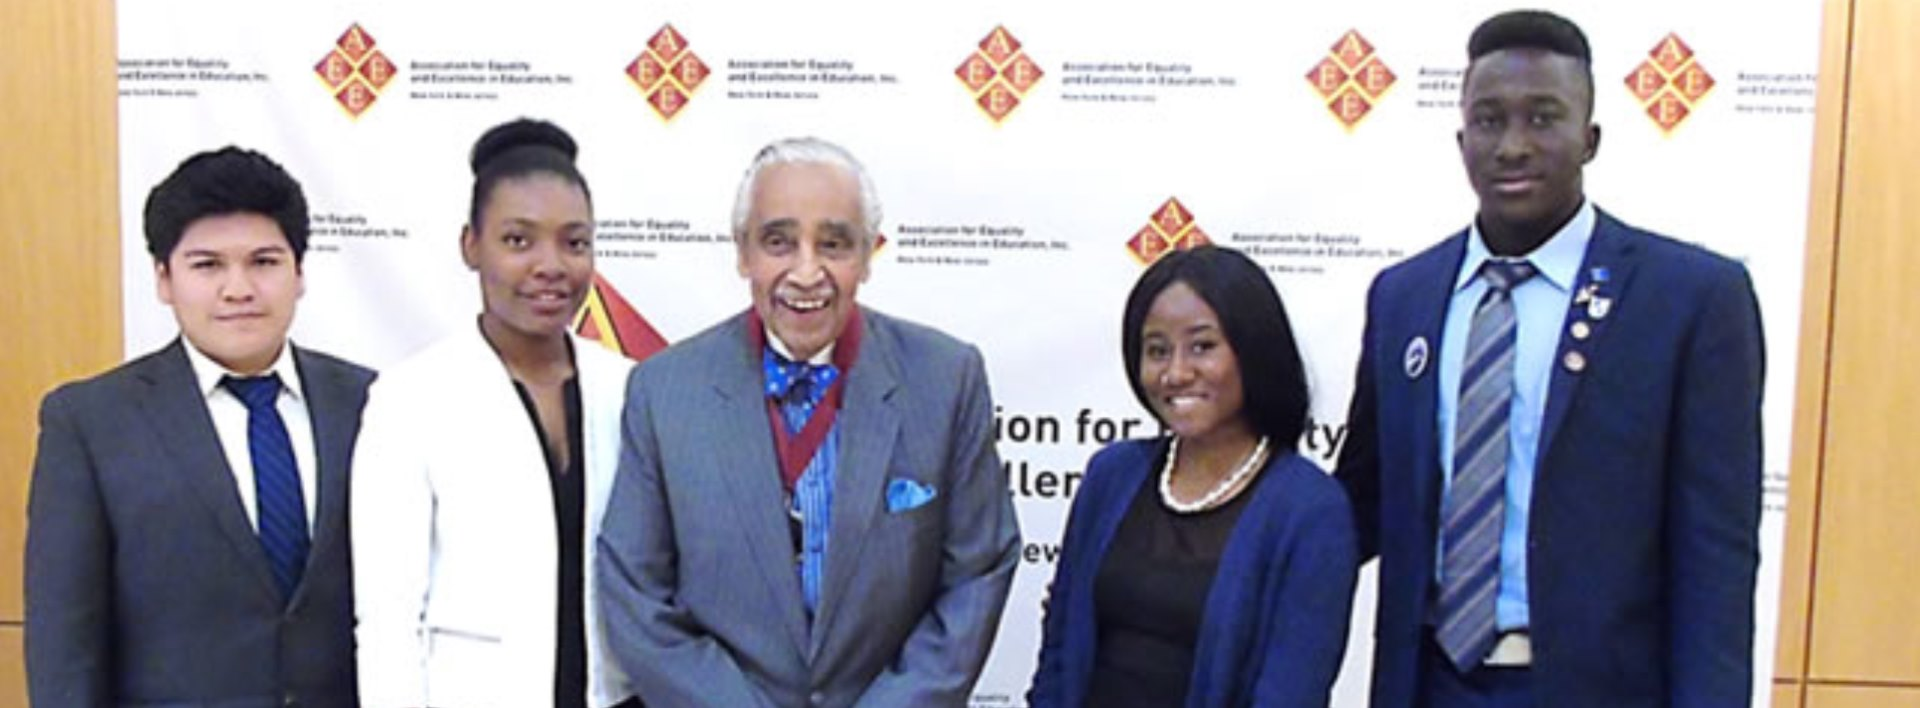 Honorable Charles Rangel, retired US Representative and SEEk founder banner